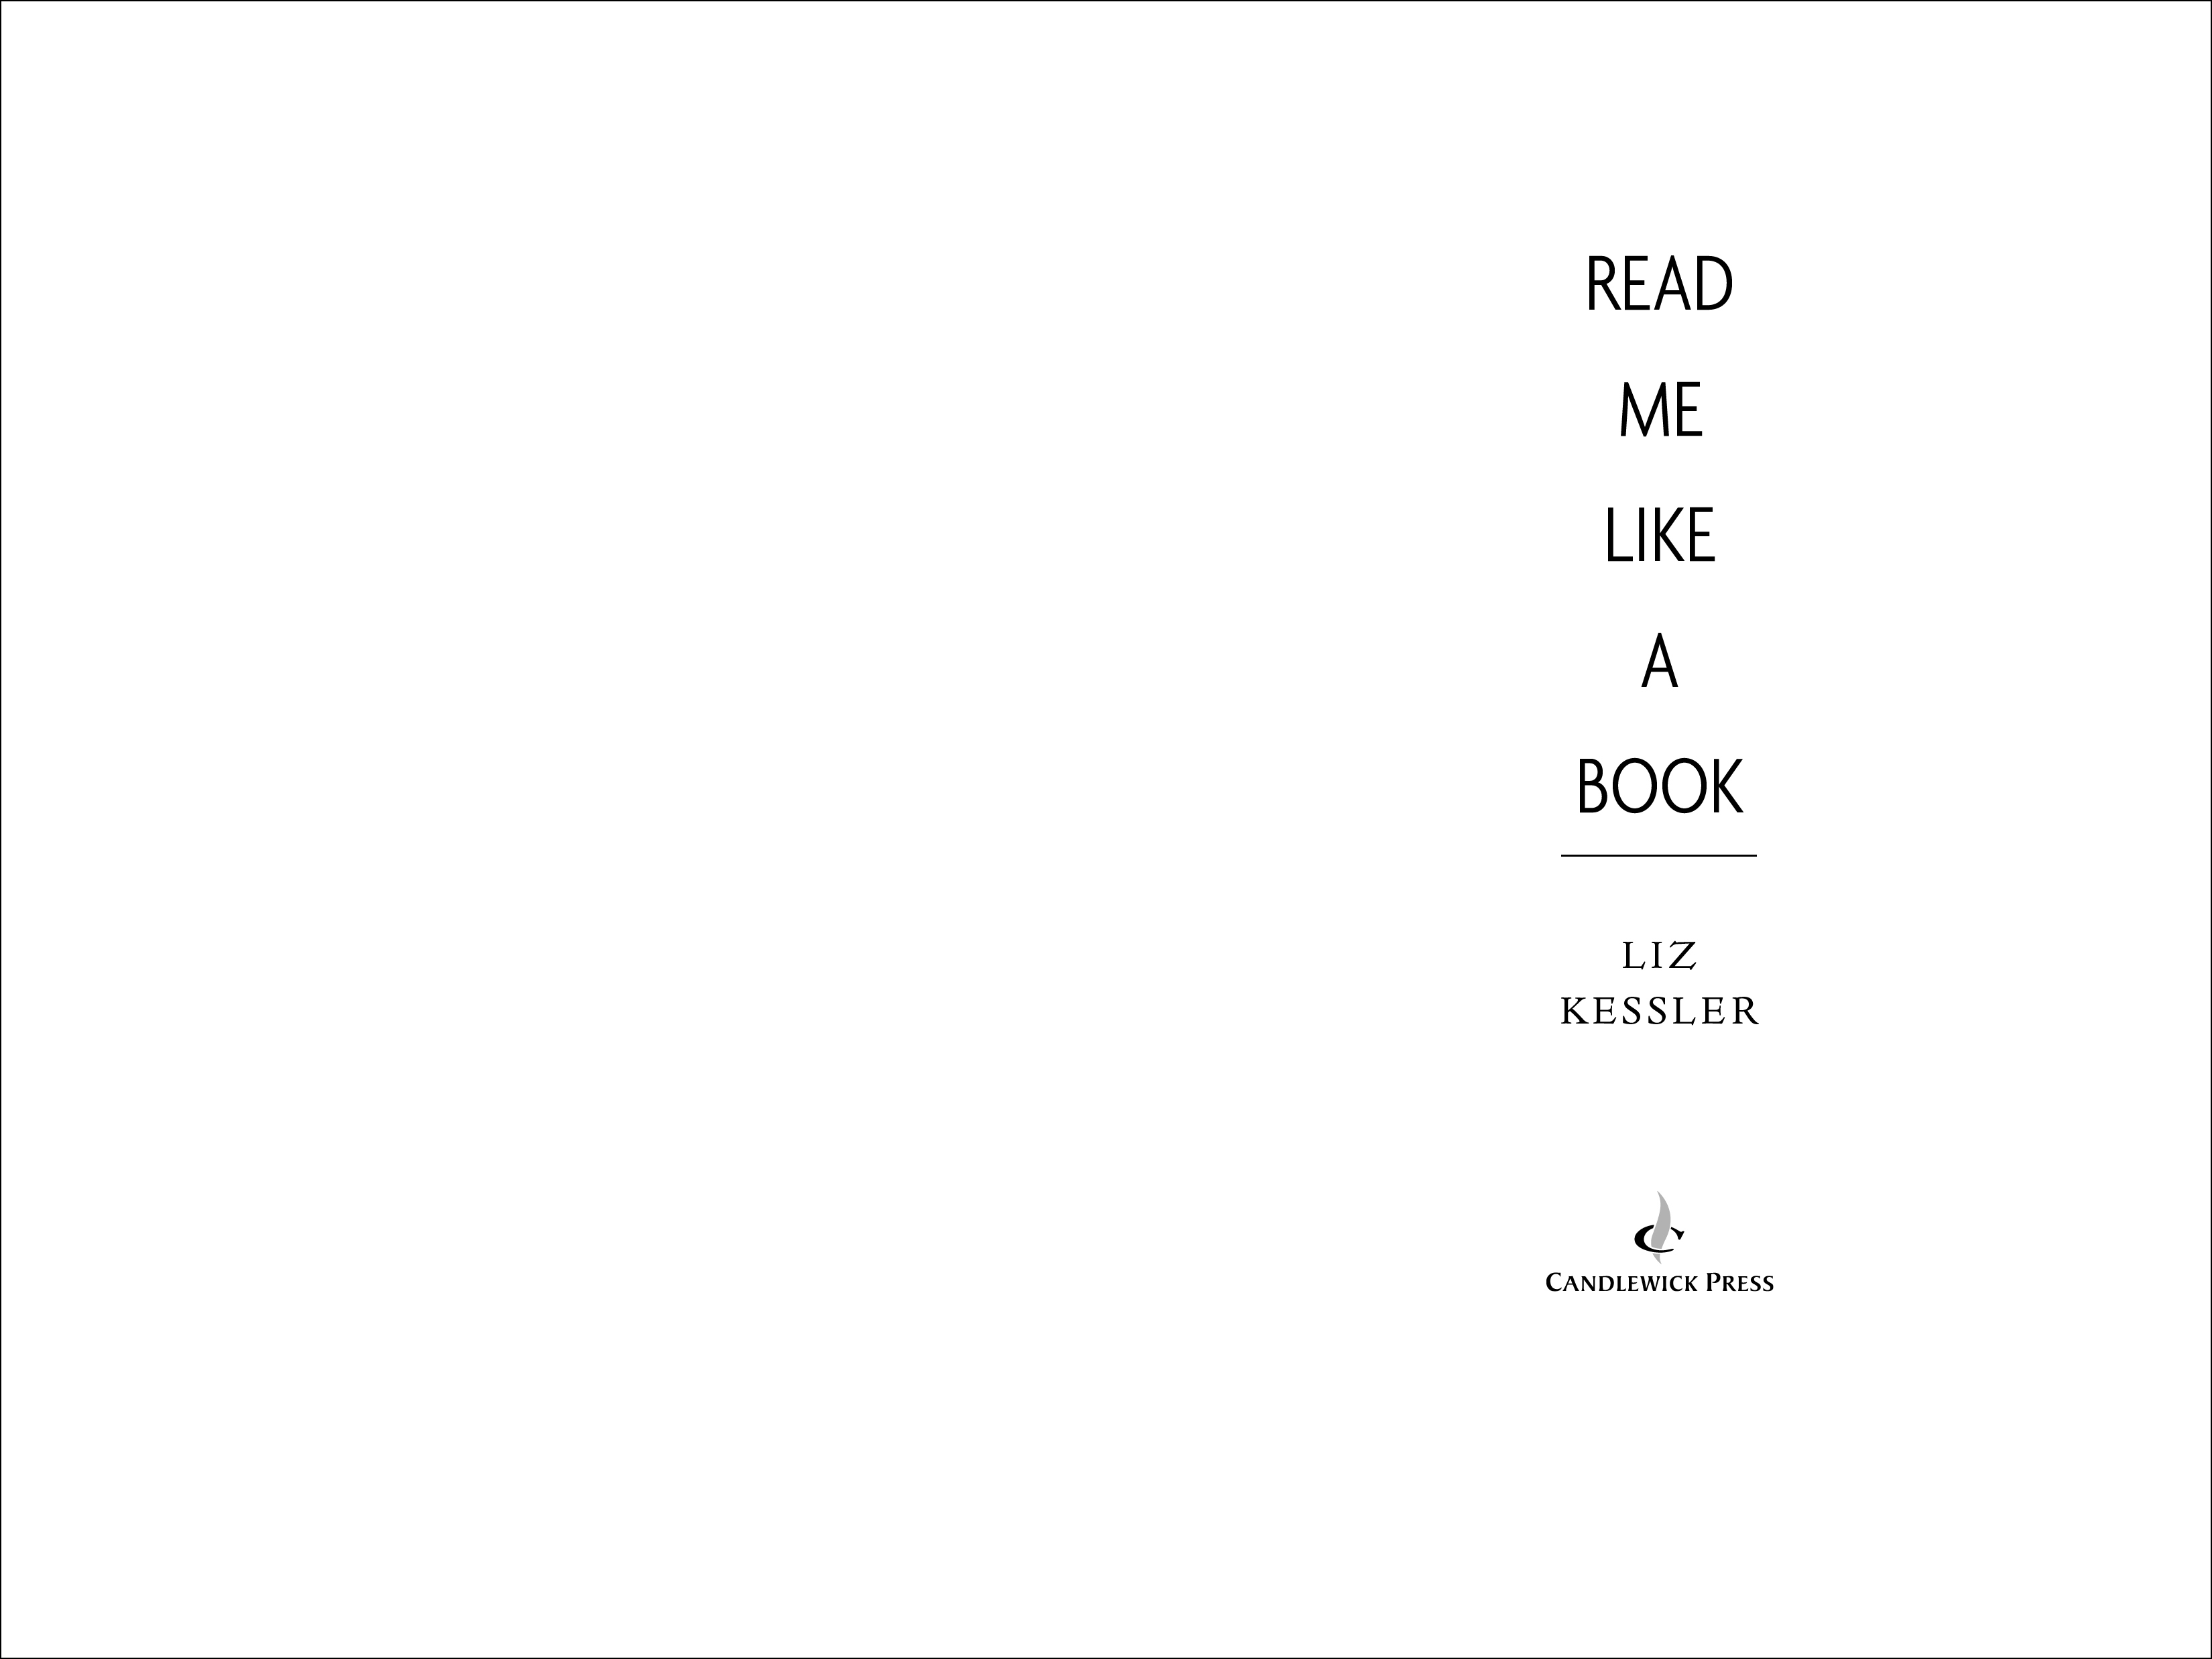 Title spread for READ ME LIKE A BOOK